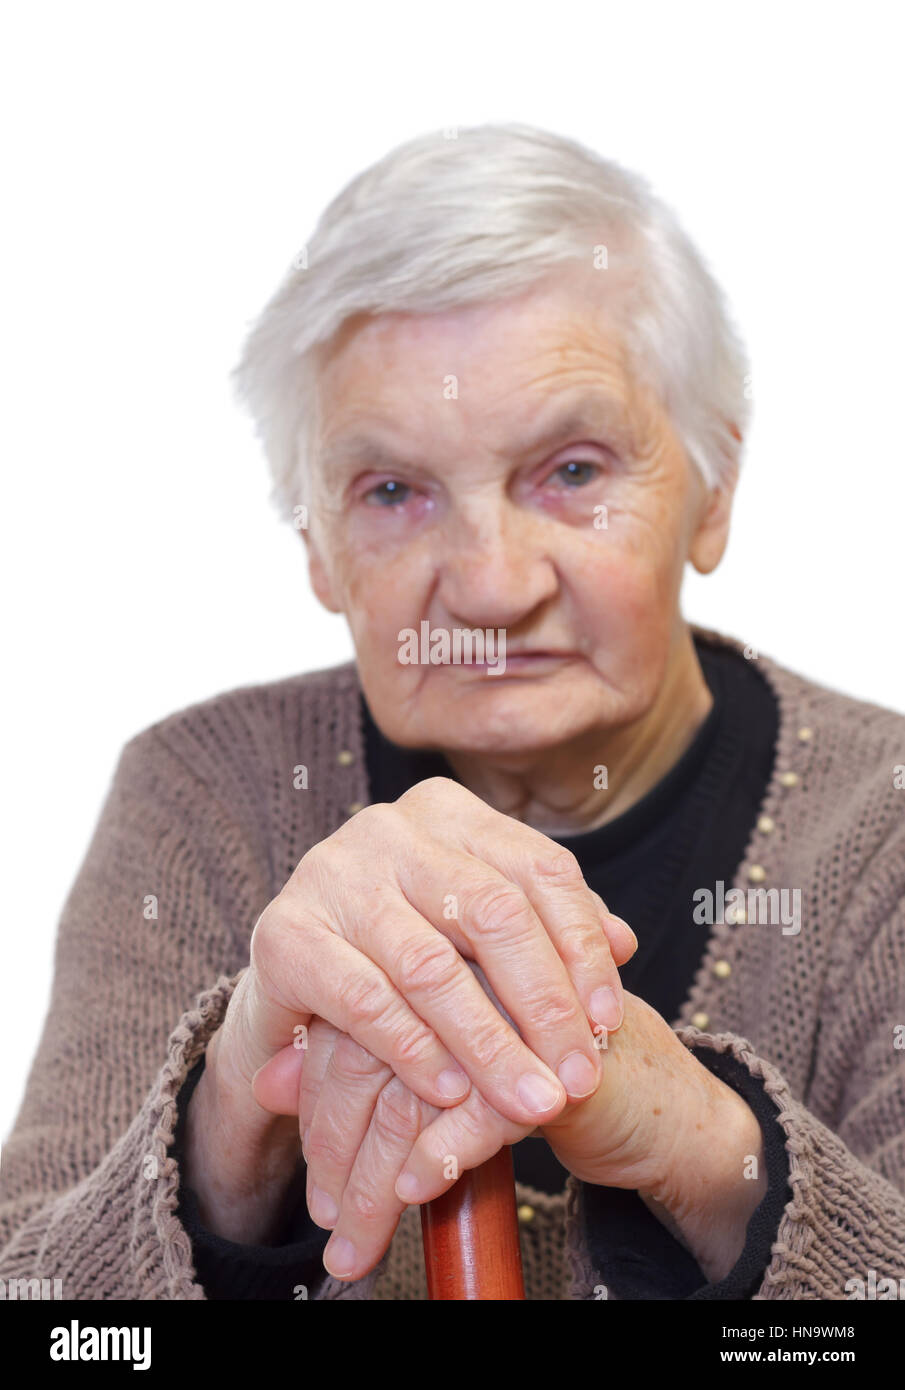 Portrait of an elderly wrinkled woman on isolated background - Stock Image